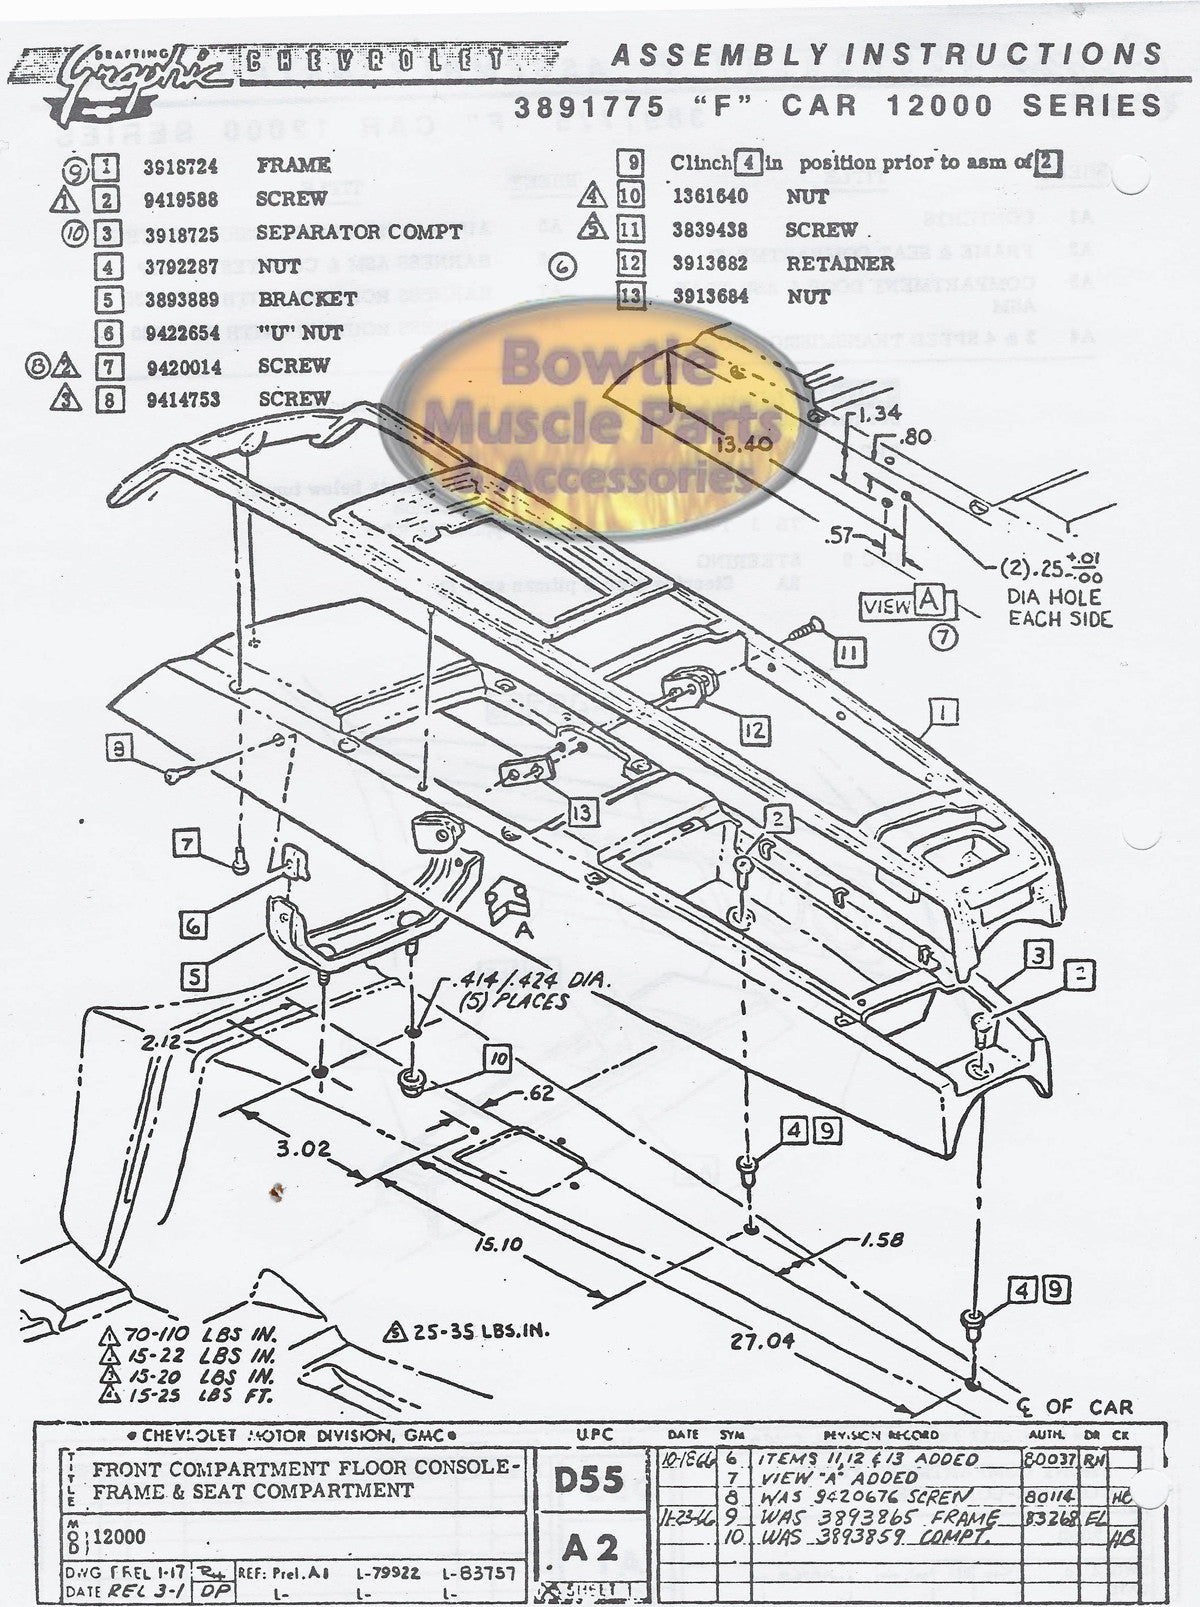 2012 Land Rover Sport Fuse Box Location on Mitsubishi Montero Sport Fuse Box Diagram